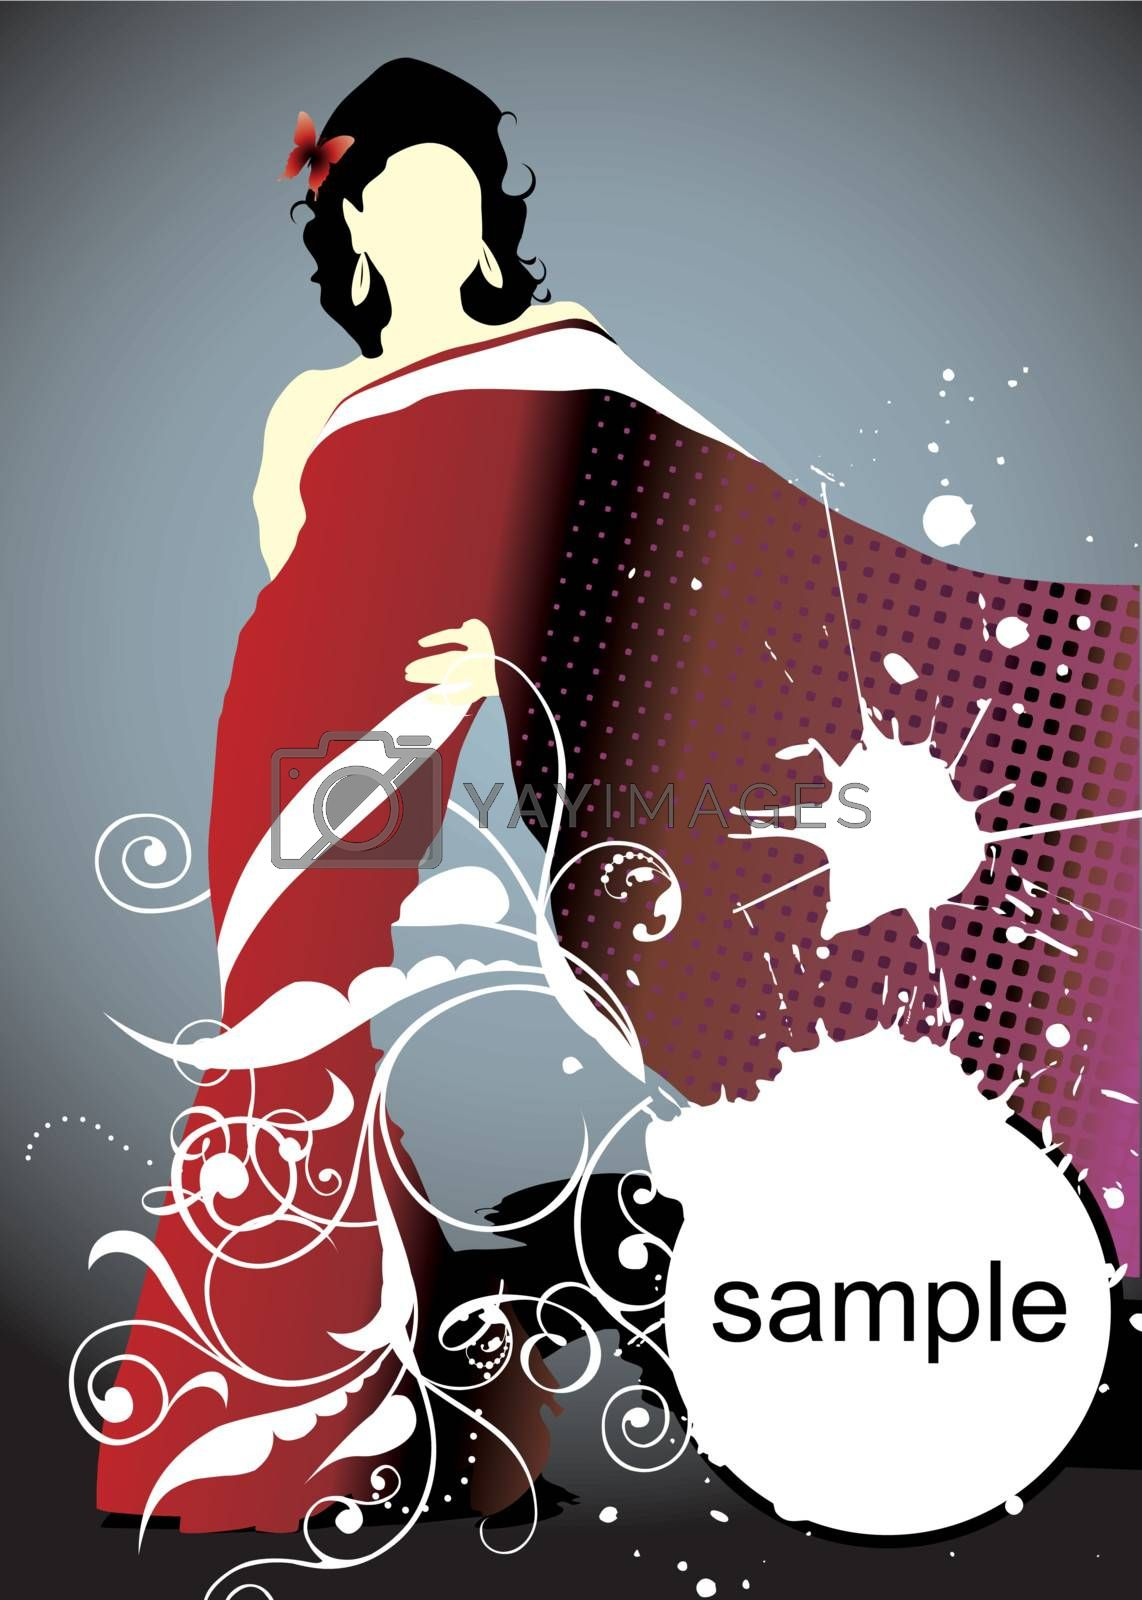 woman silhouette by ojal